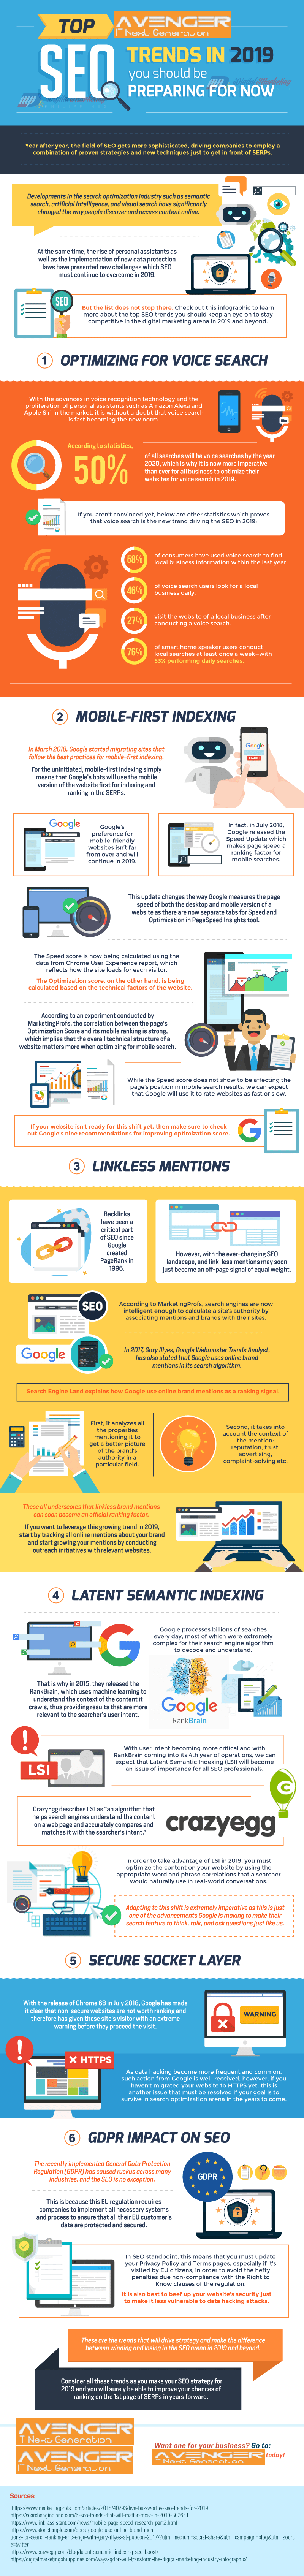 linkless mentions - web marketing